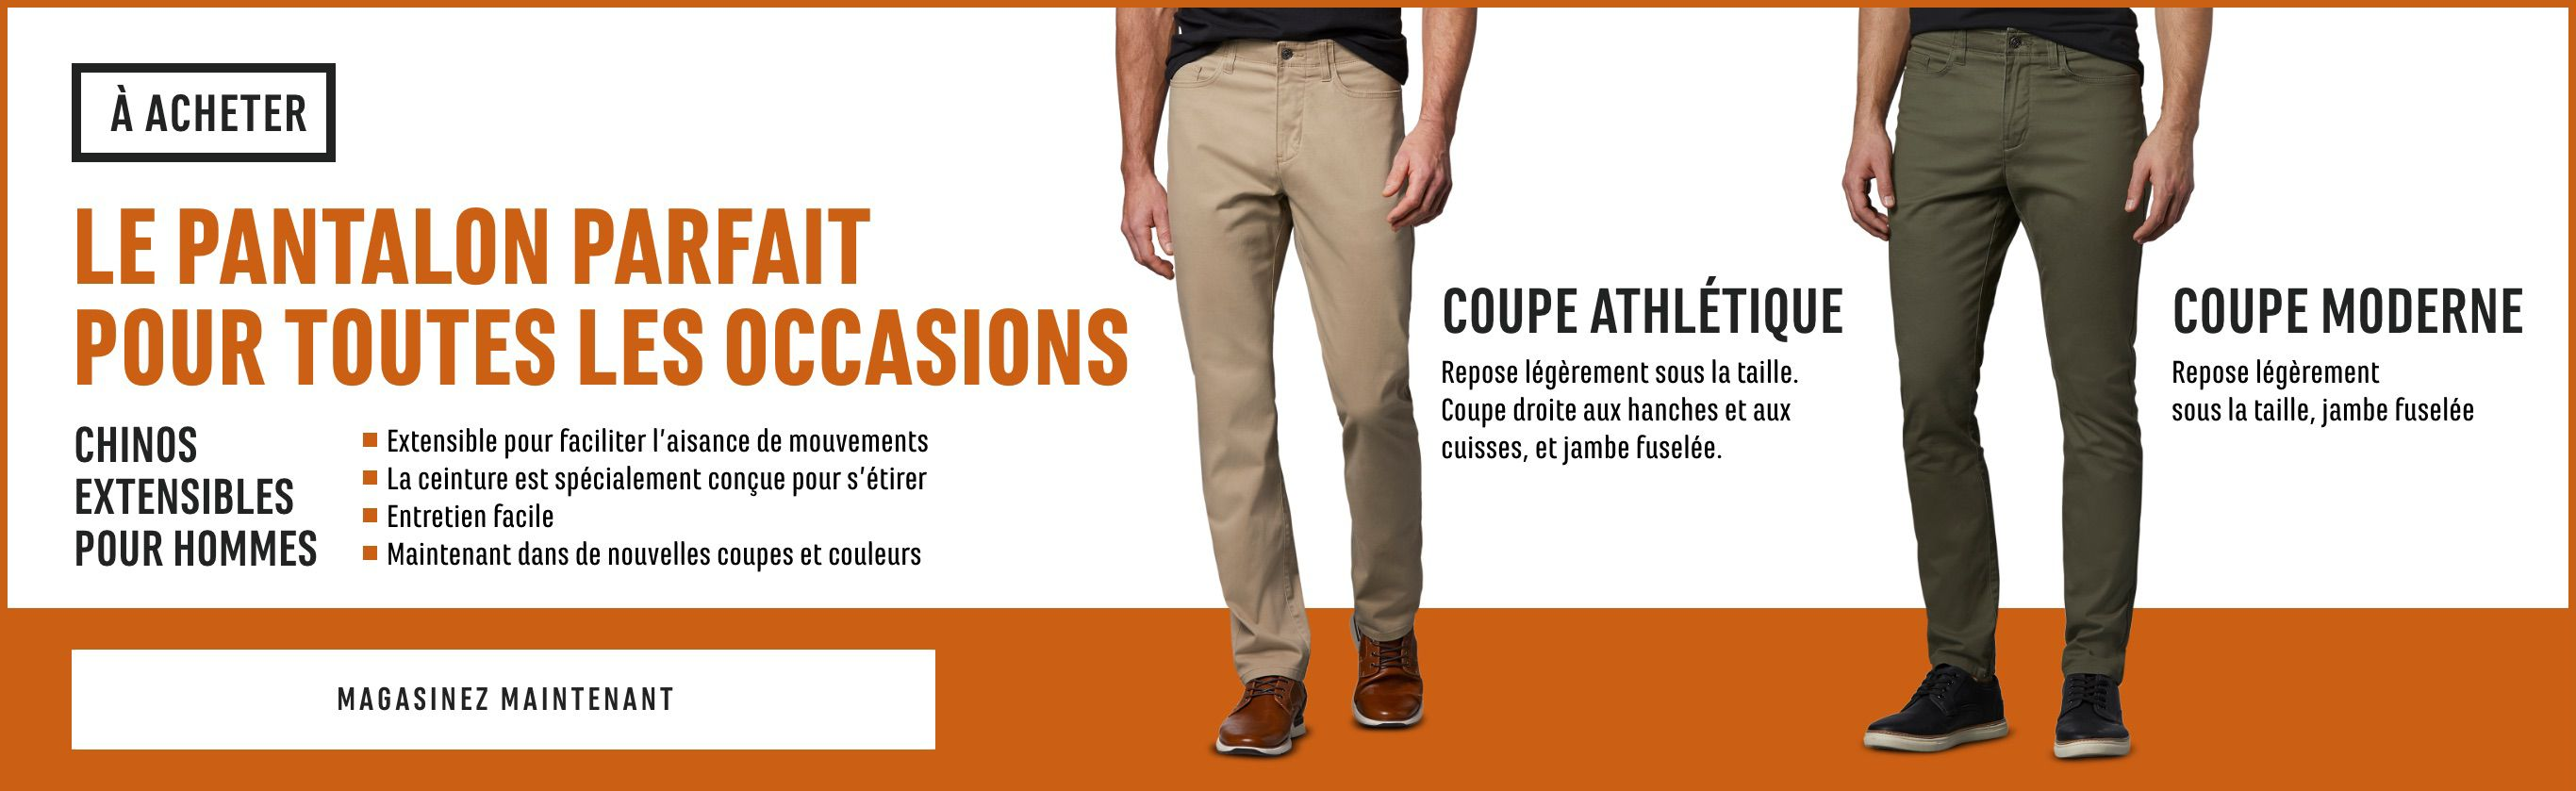 Chinos extensibles pour hommes